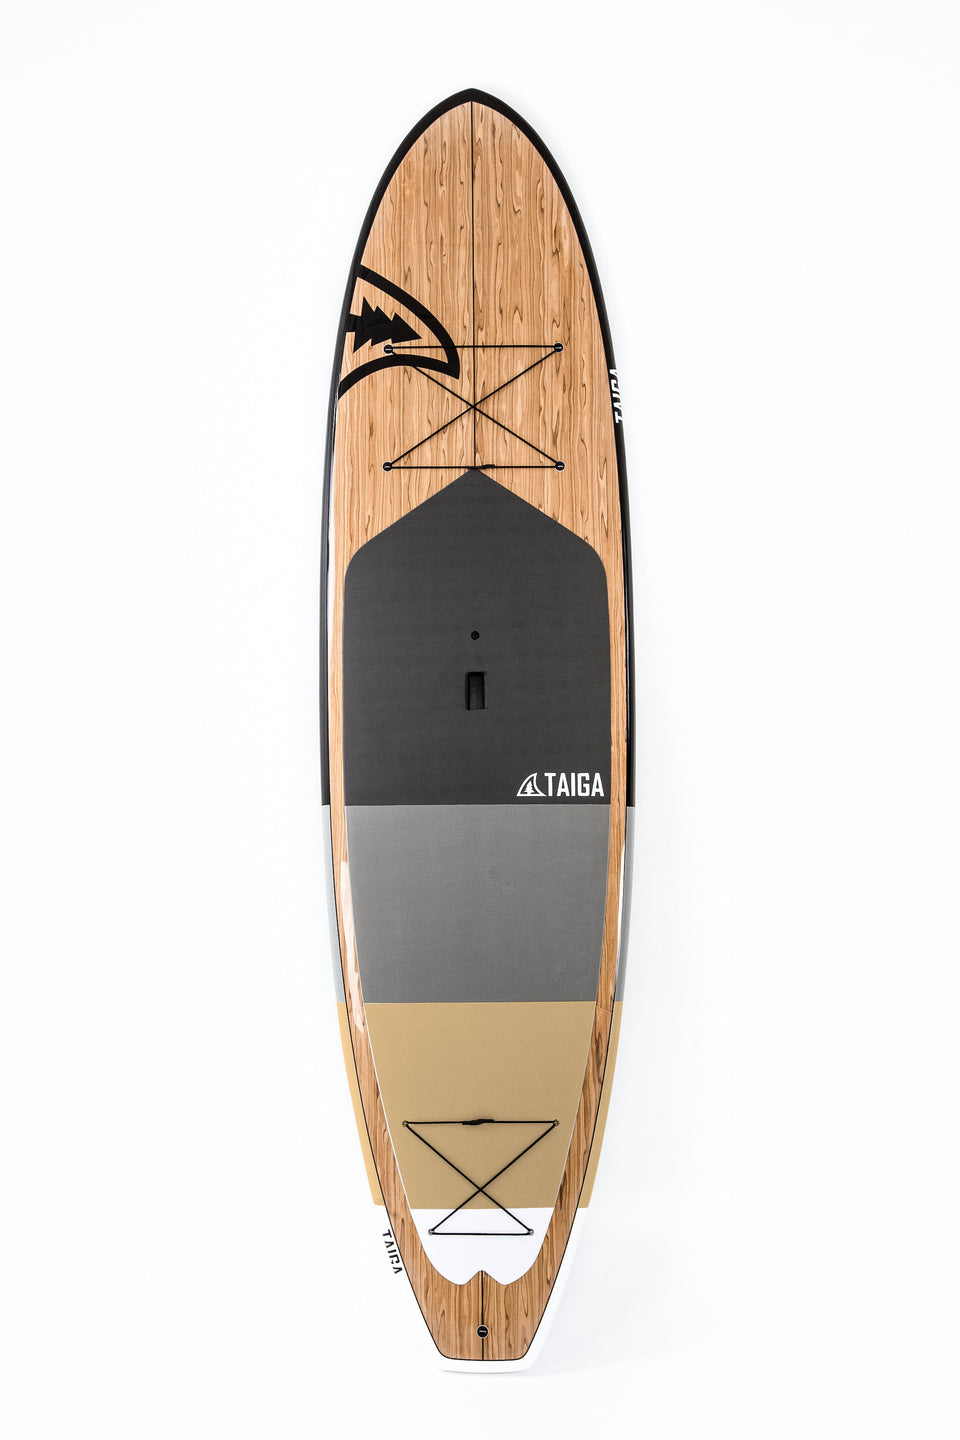 Hard SUP - Thuya 11'4 (PRE ORDER - END OF JULY 2021)